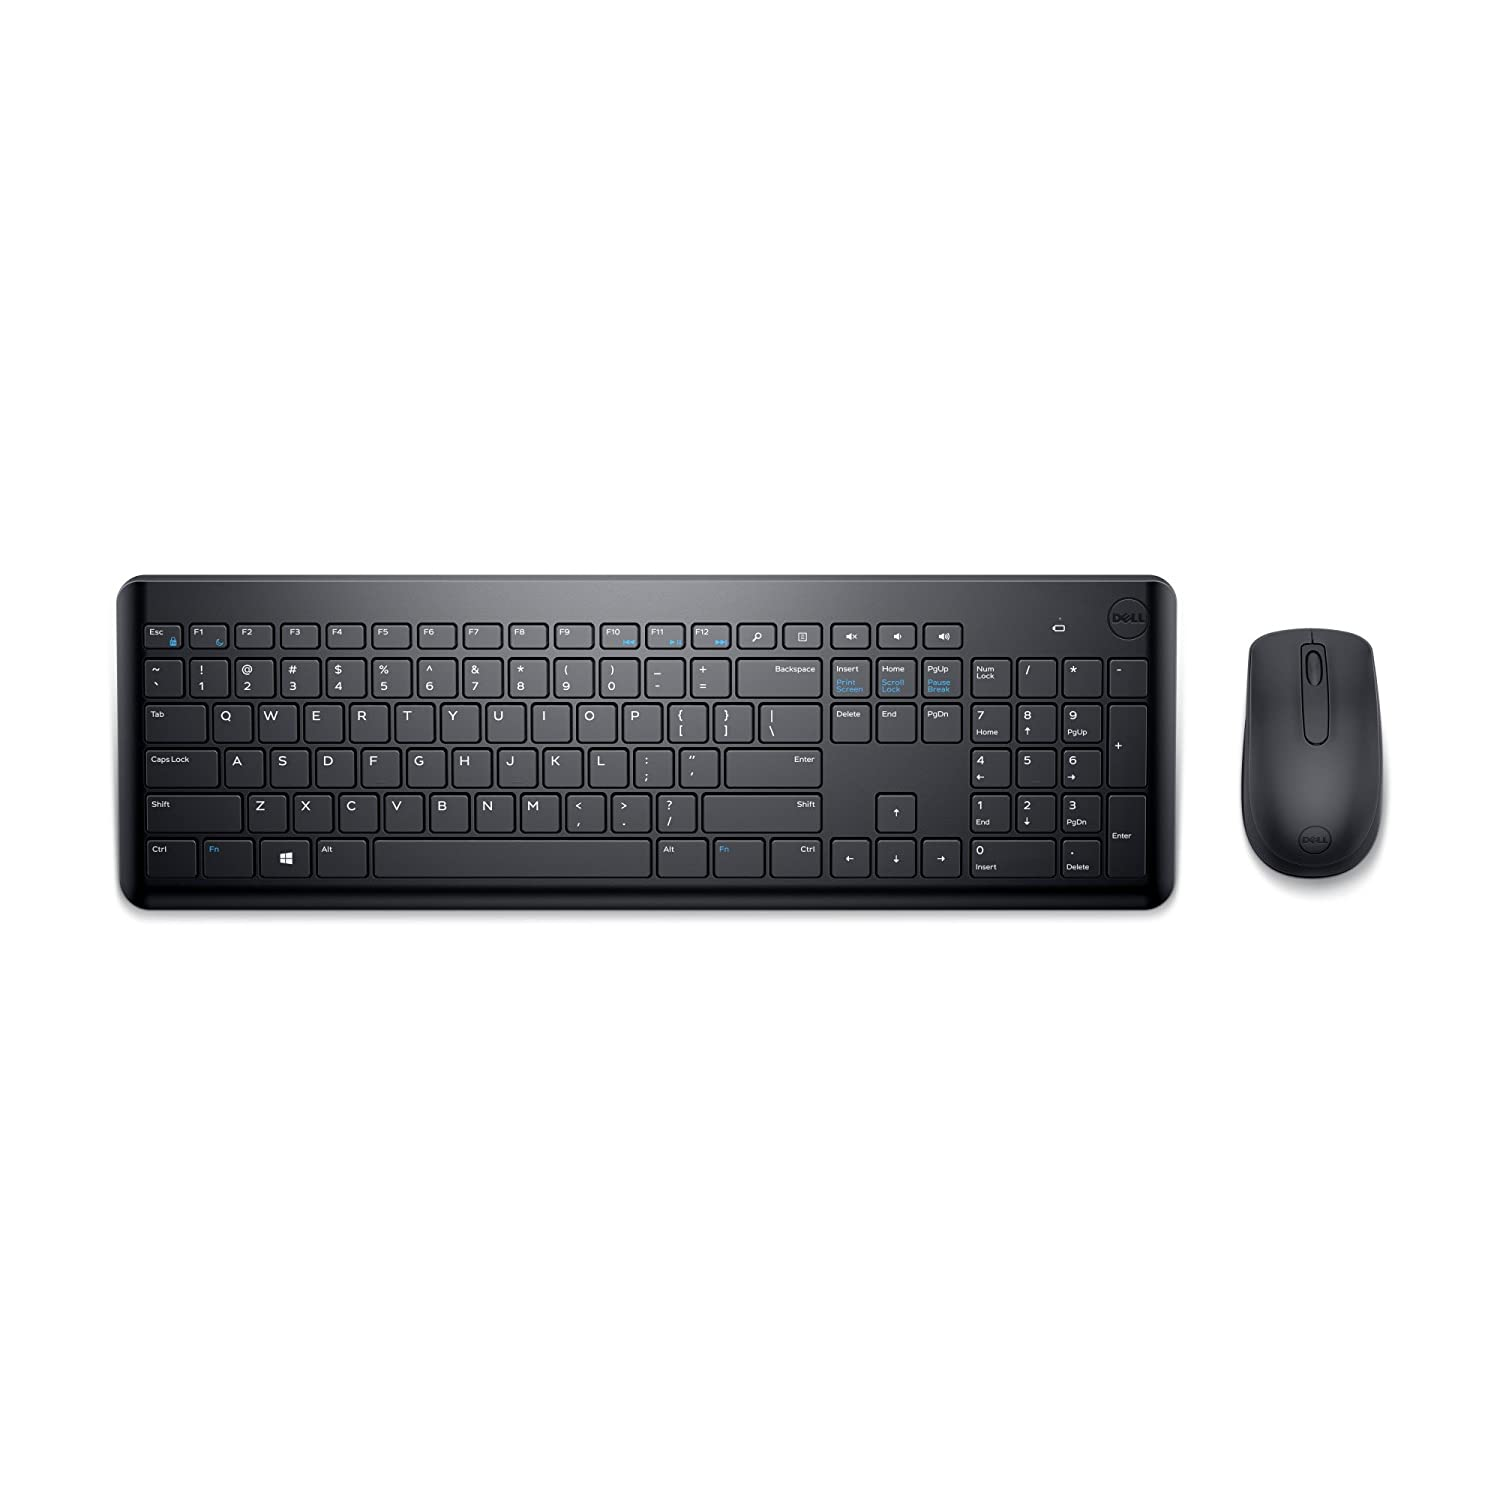 Amazon buy dell km117 wireless keyboard mouse online at low amazon buy dell km117 wireless keyboard mouse online at low prices in india dell reviews ratings biocorpaavc Images